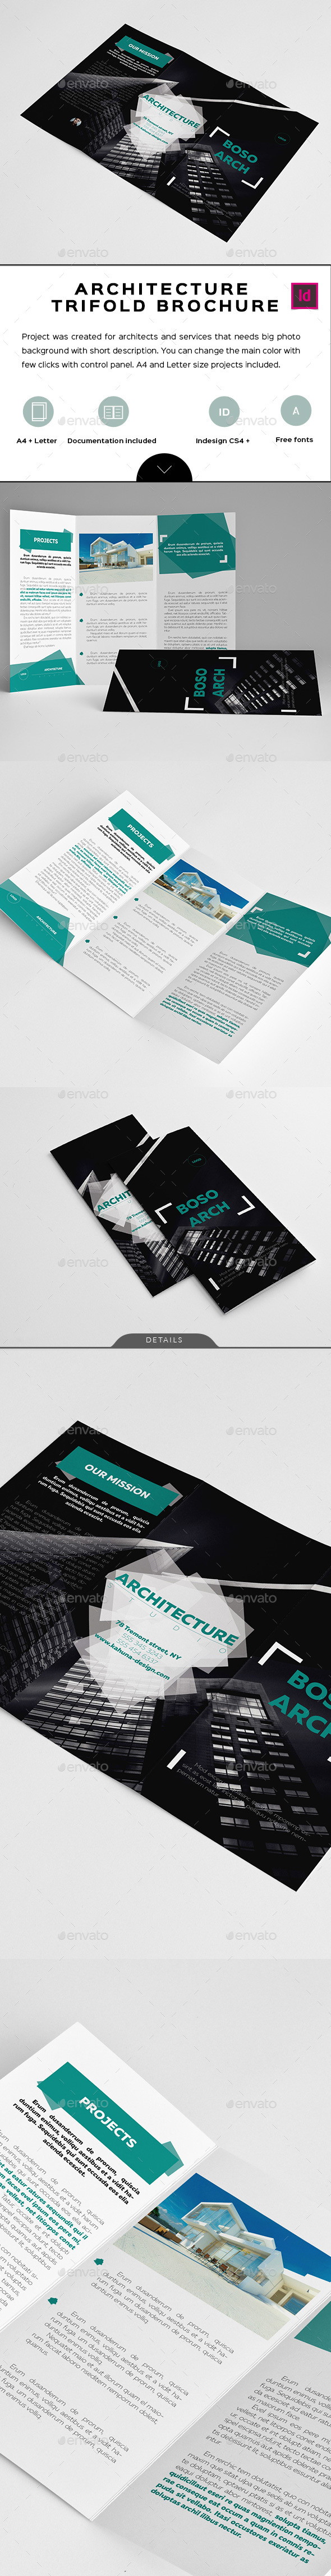 Boso Architecture Trifold Brochure - Brochures Print Templates